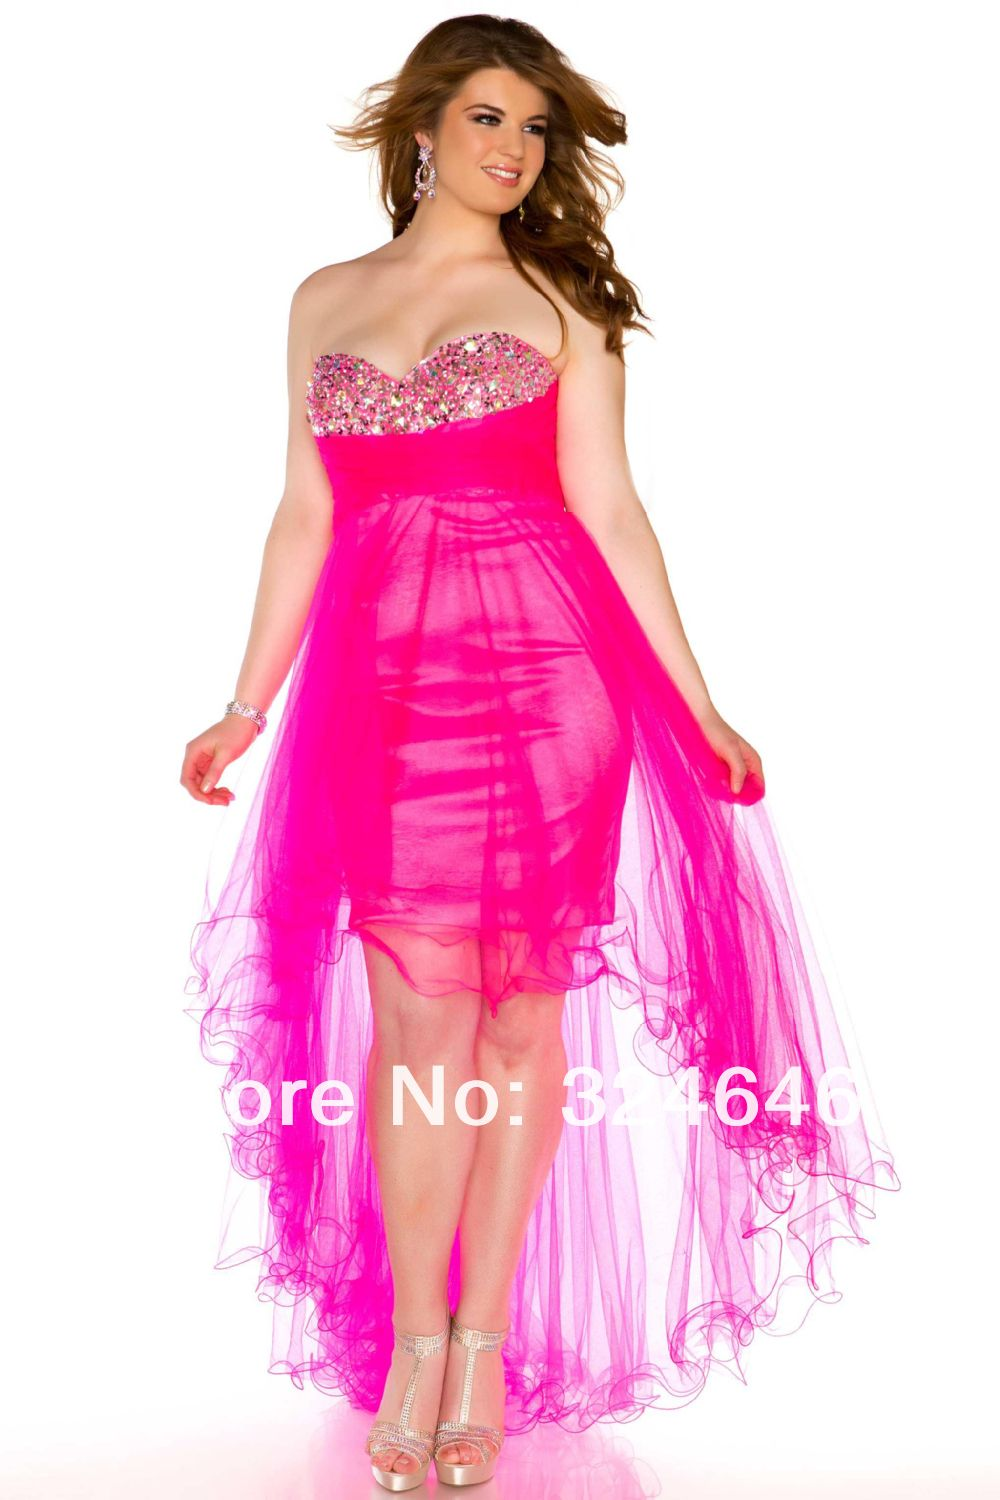 Sweetheart neckline diamond hot pink blue short front long back party dress  short sparkly prom dresses -in Evening Dresses from Apparel   Accessories  on ... 69dc24b0d67d